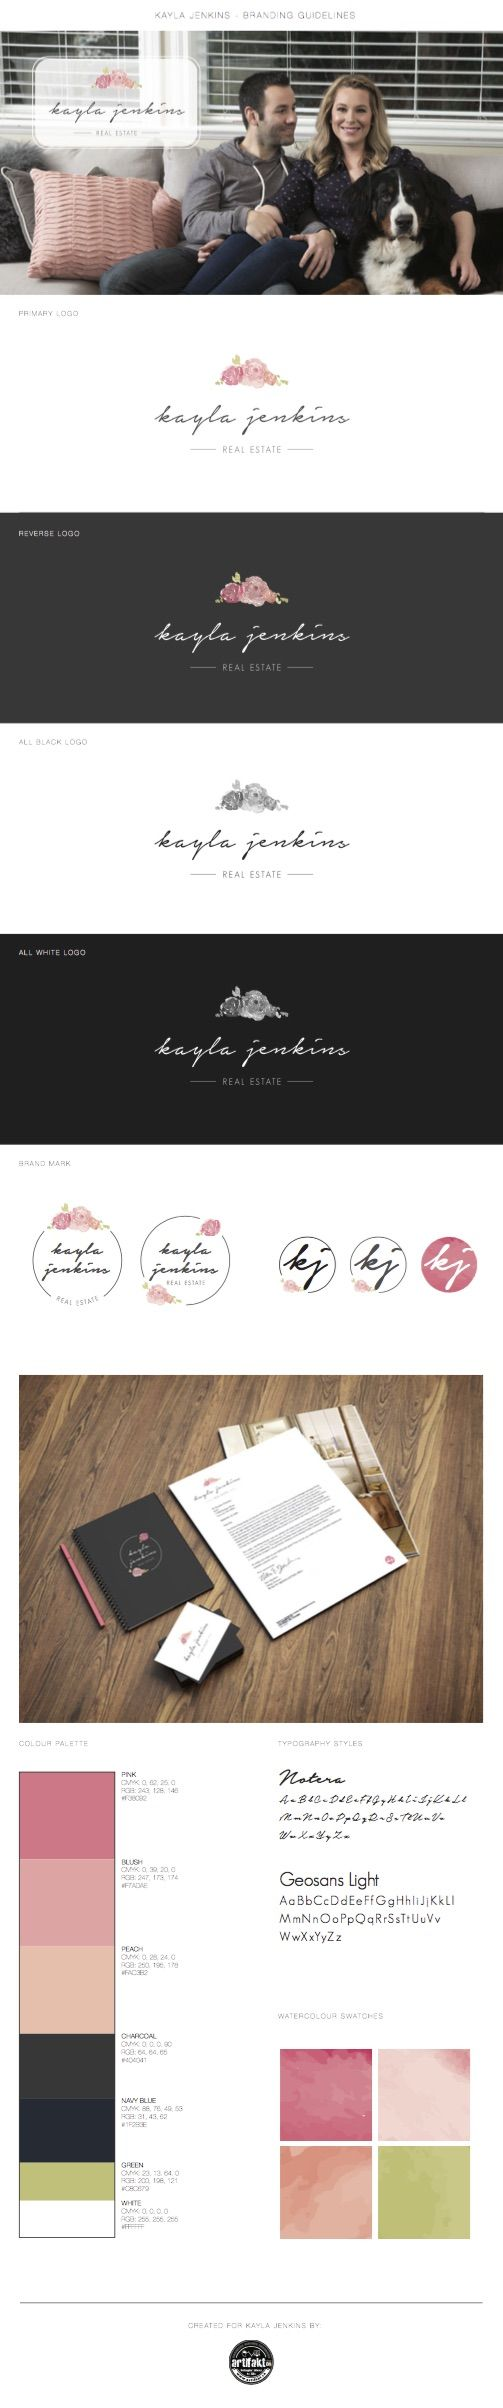 The completed branding guidelines we did for 'Kayla Jenkins', a real estate agent in Victoria, BC.